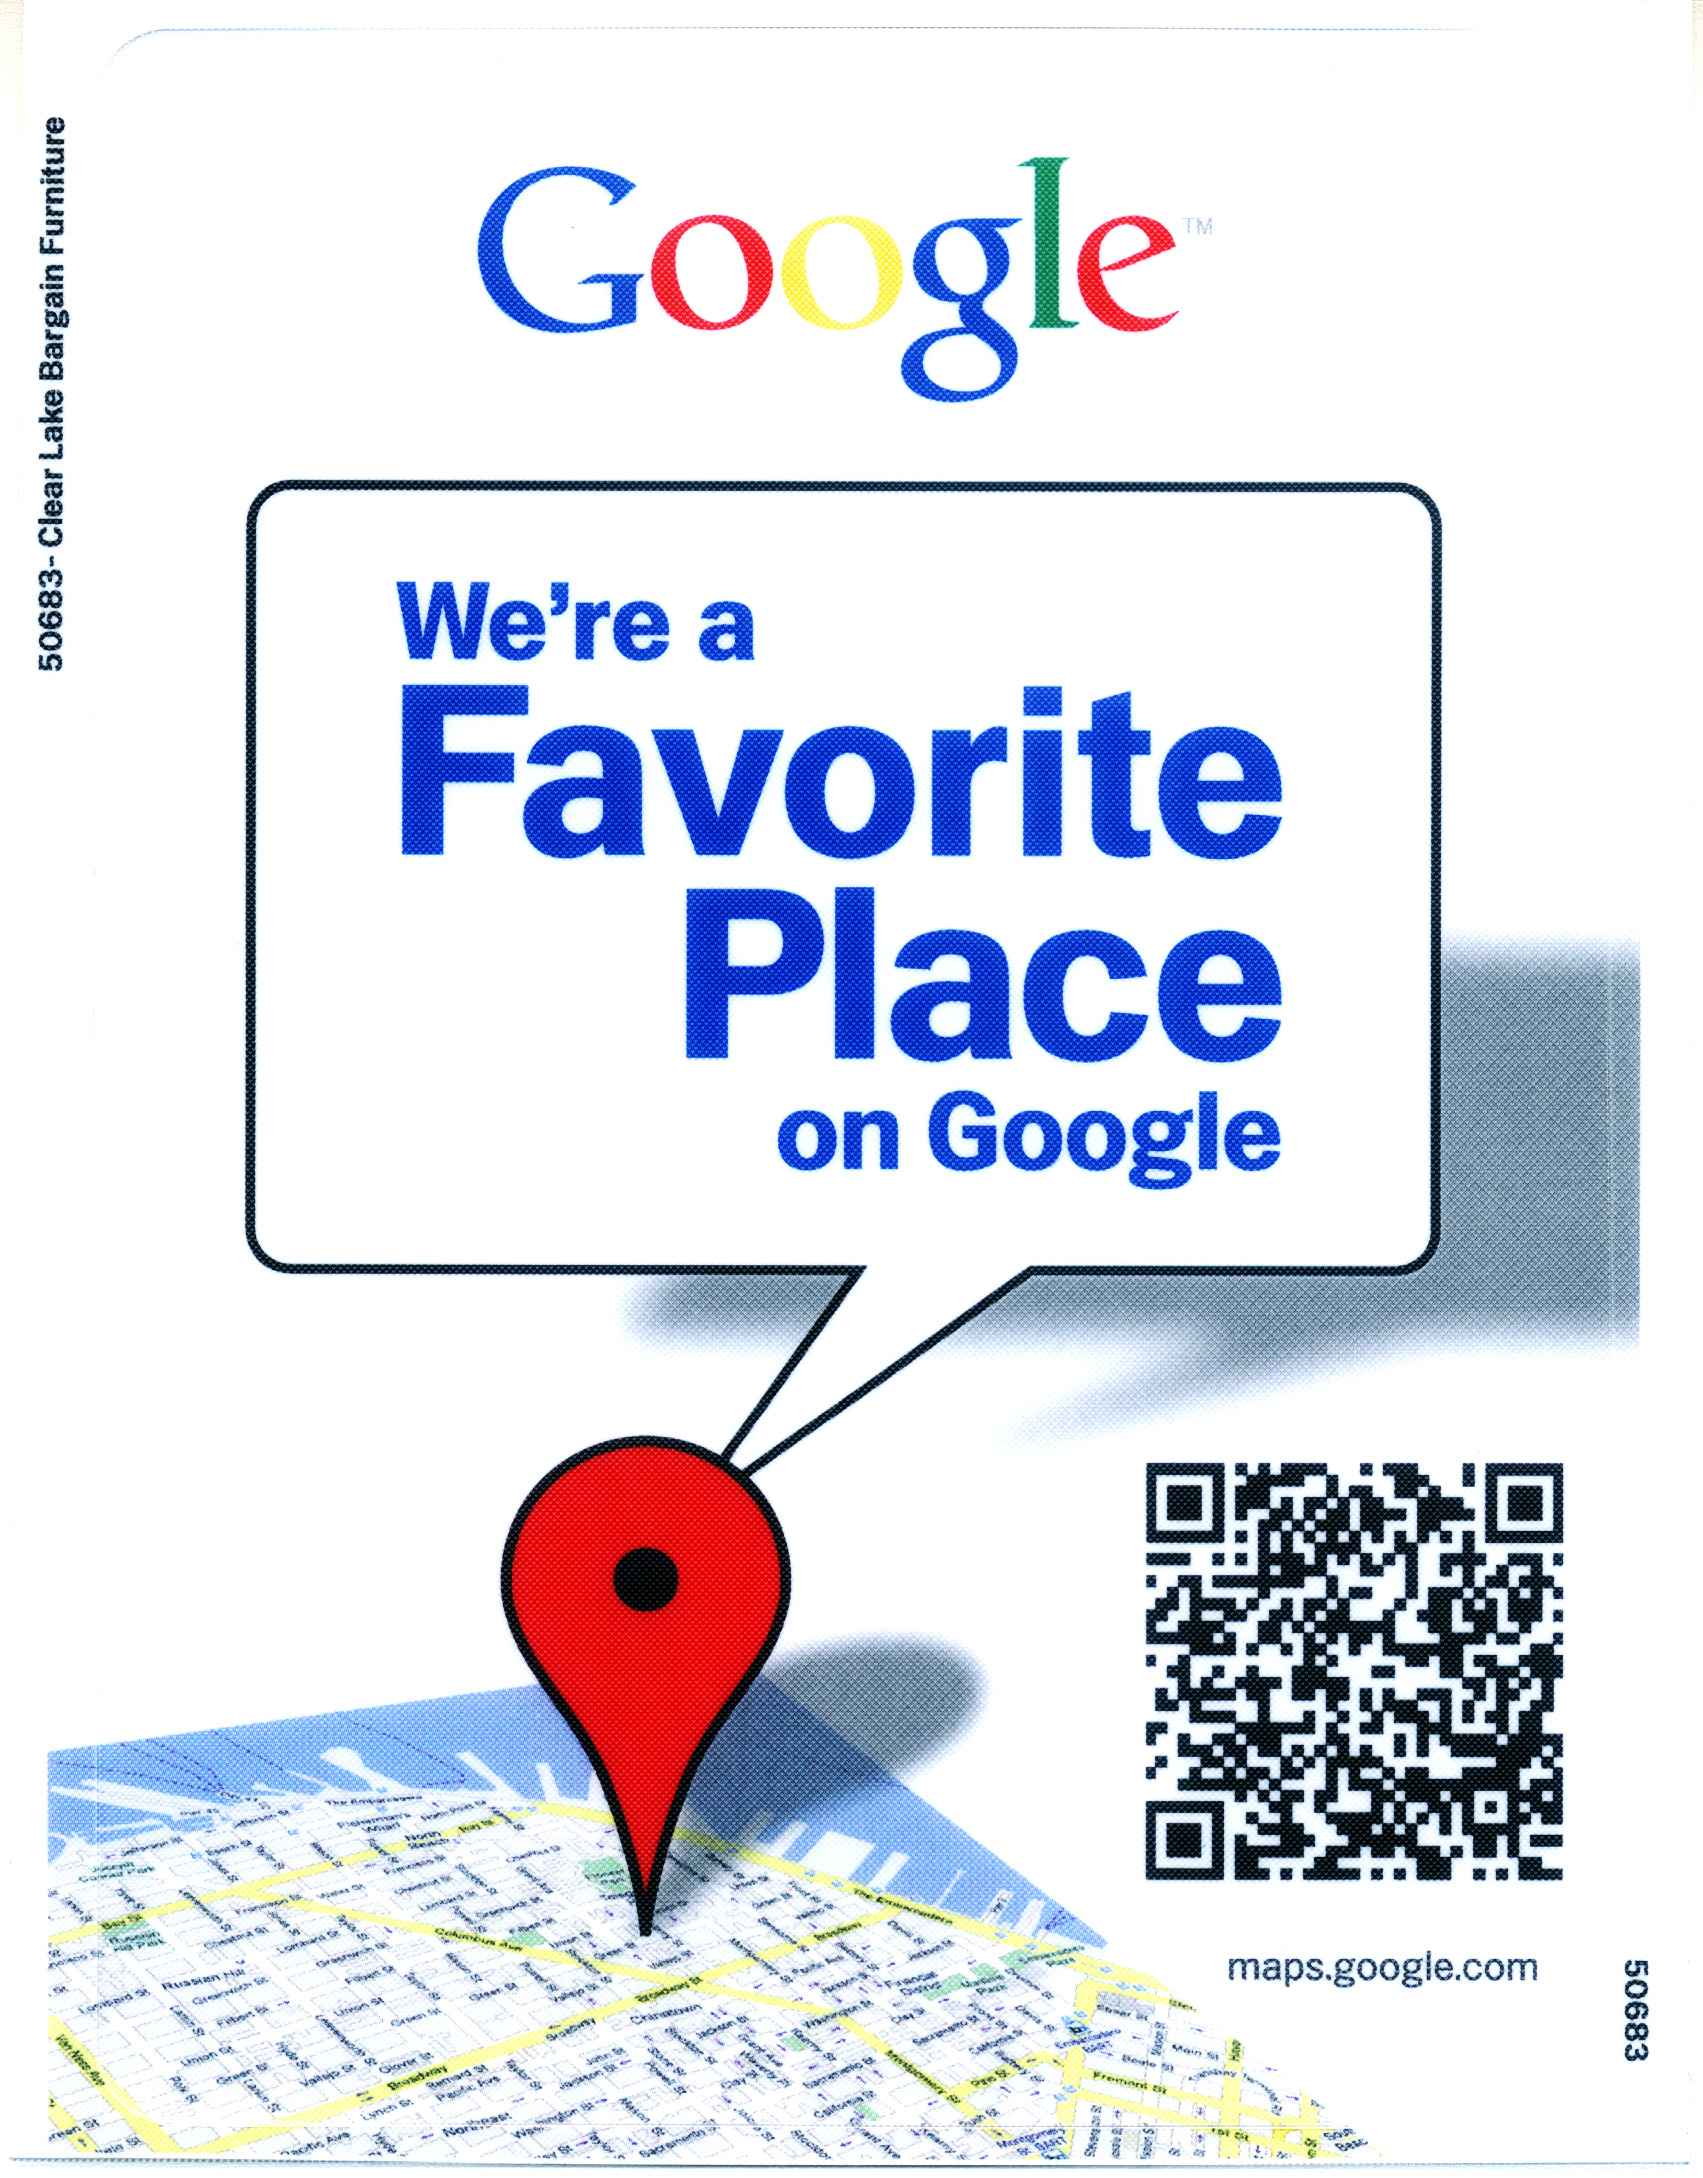 Google Favorite Place!